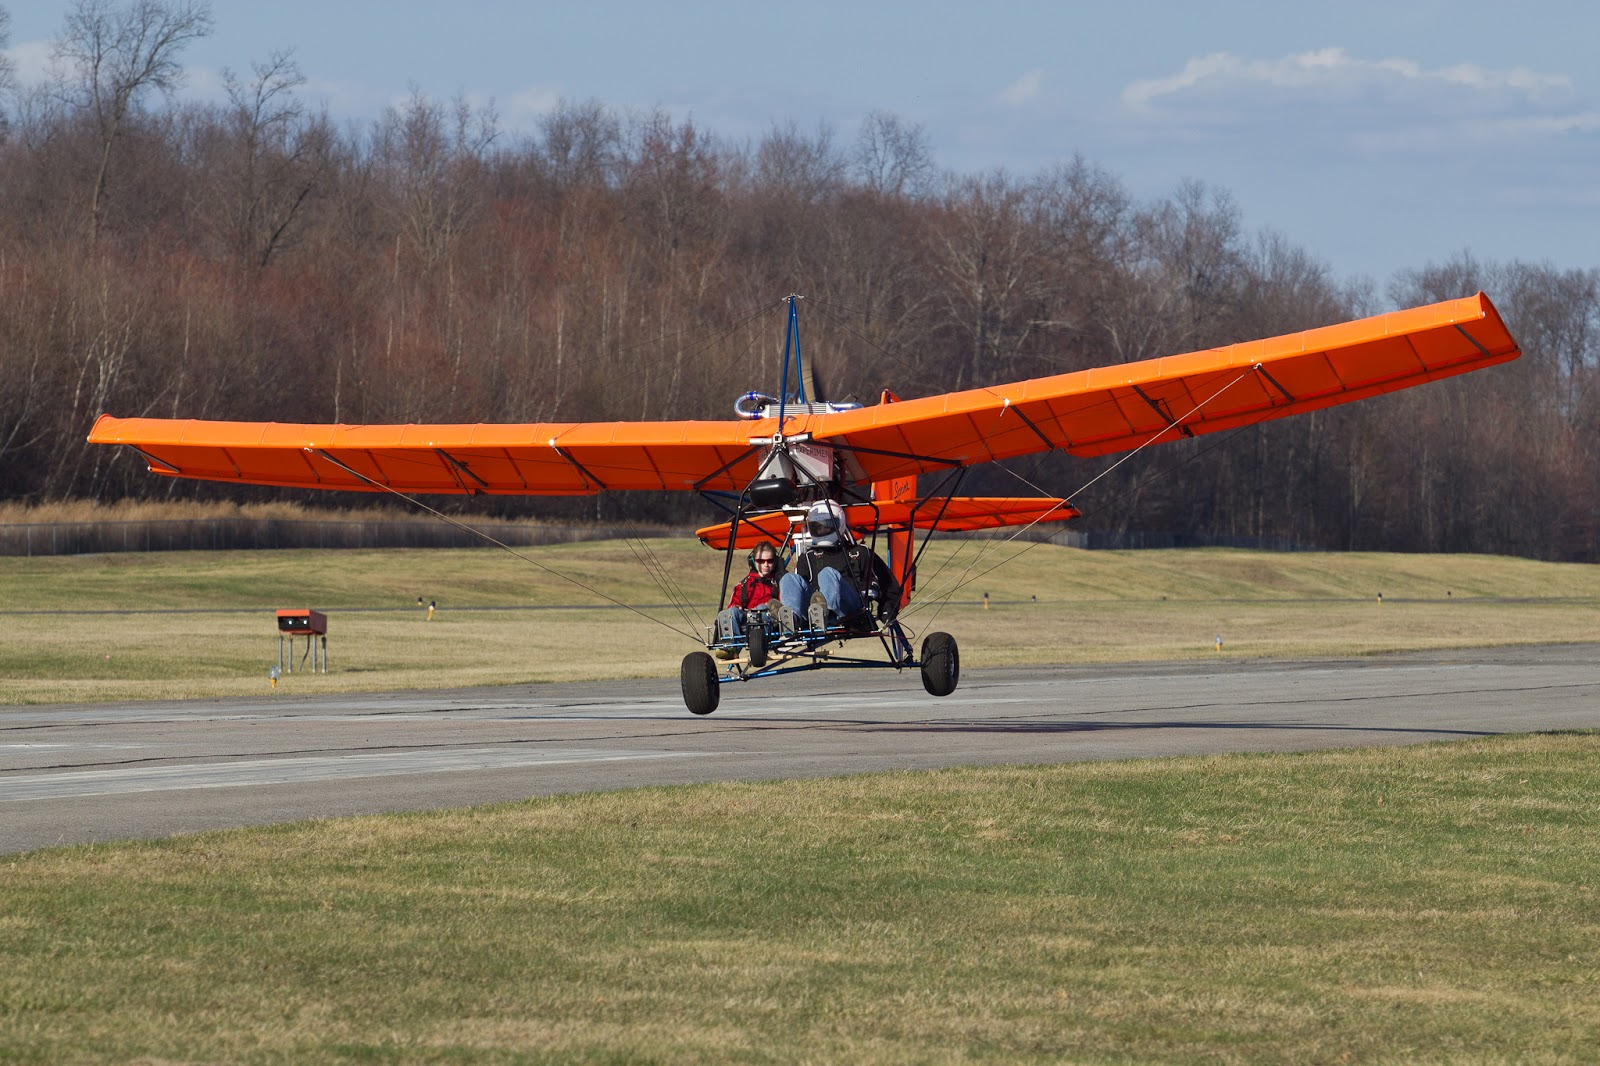 Ultralight aircraft at Randall Airport